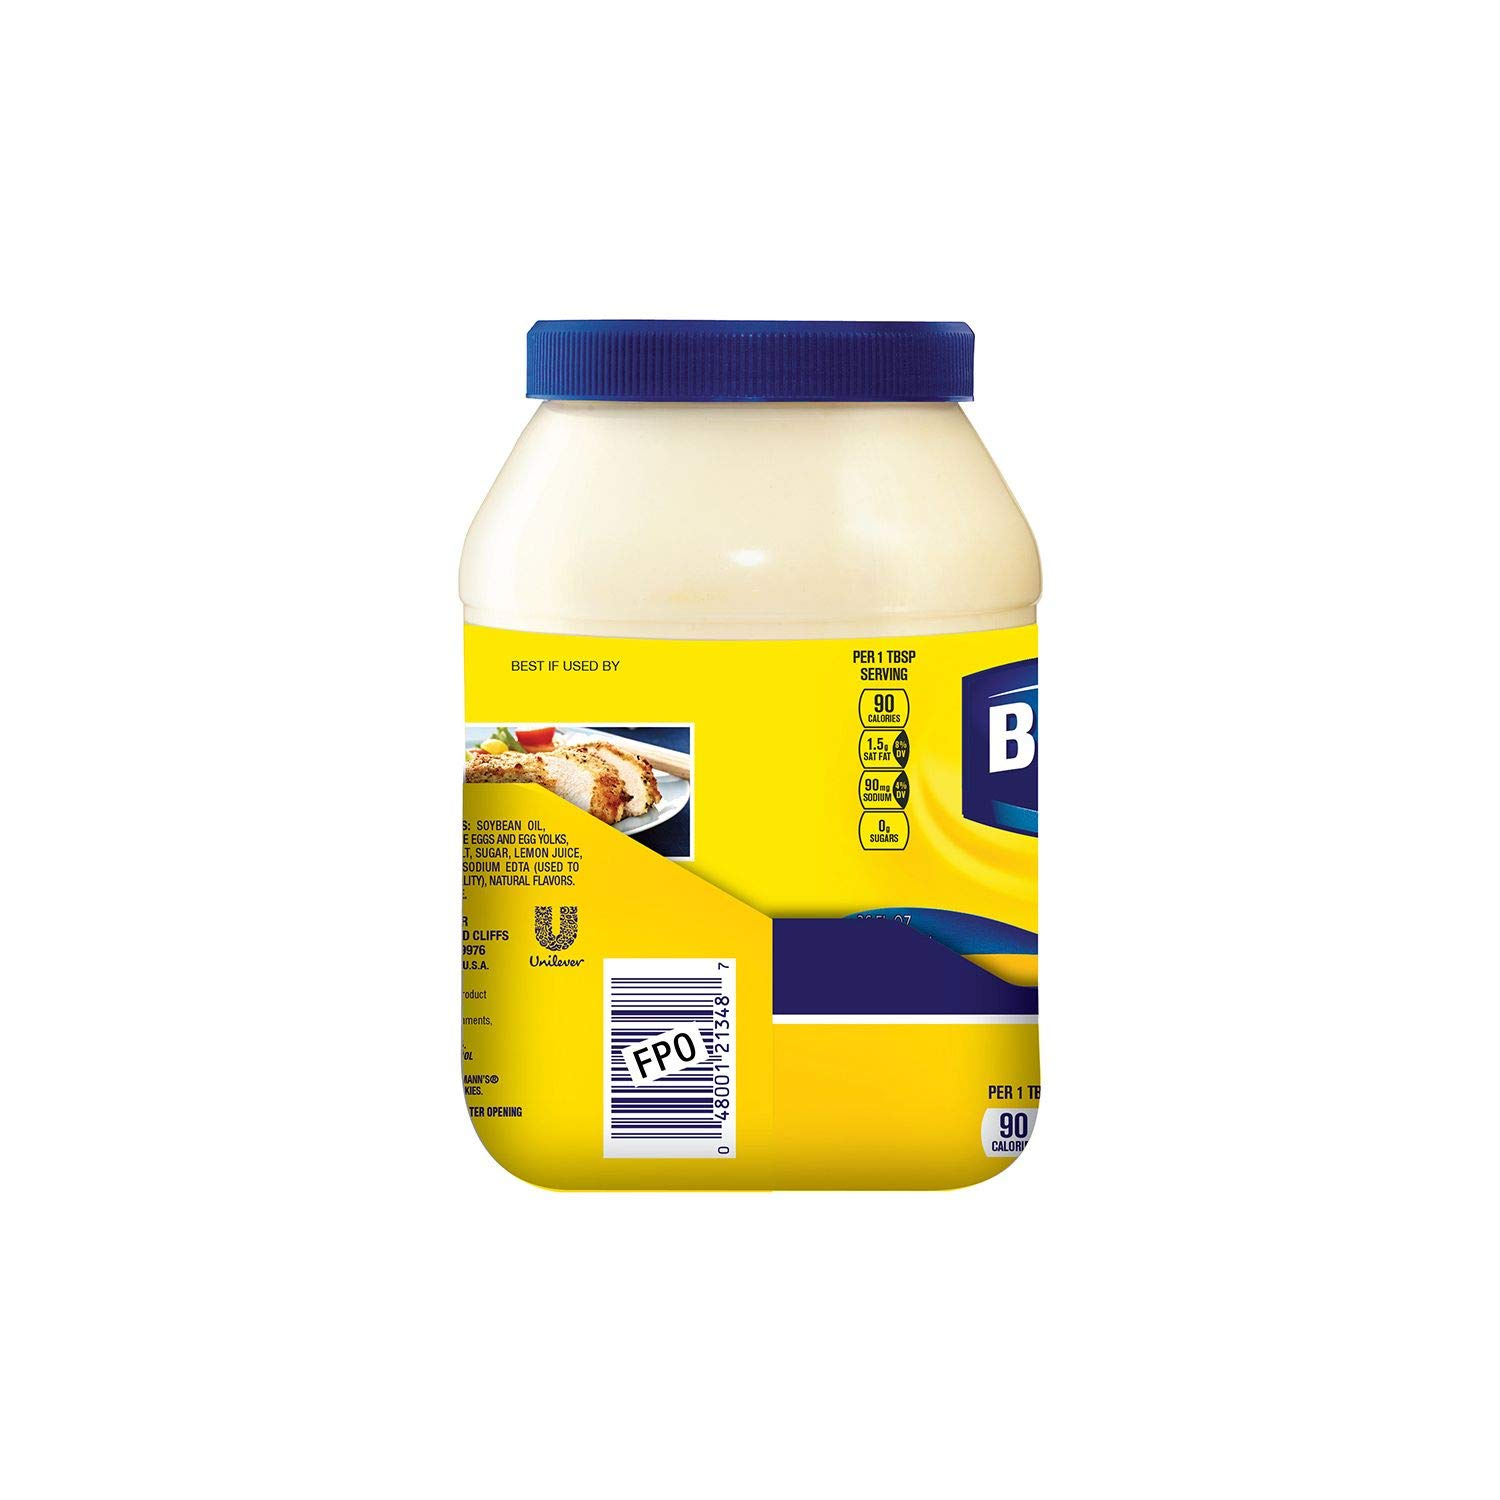 Best Foods Real Mayonaise store 15oz Max 58% OFF Plastic Jar Pack of 3